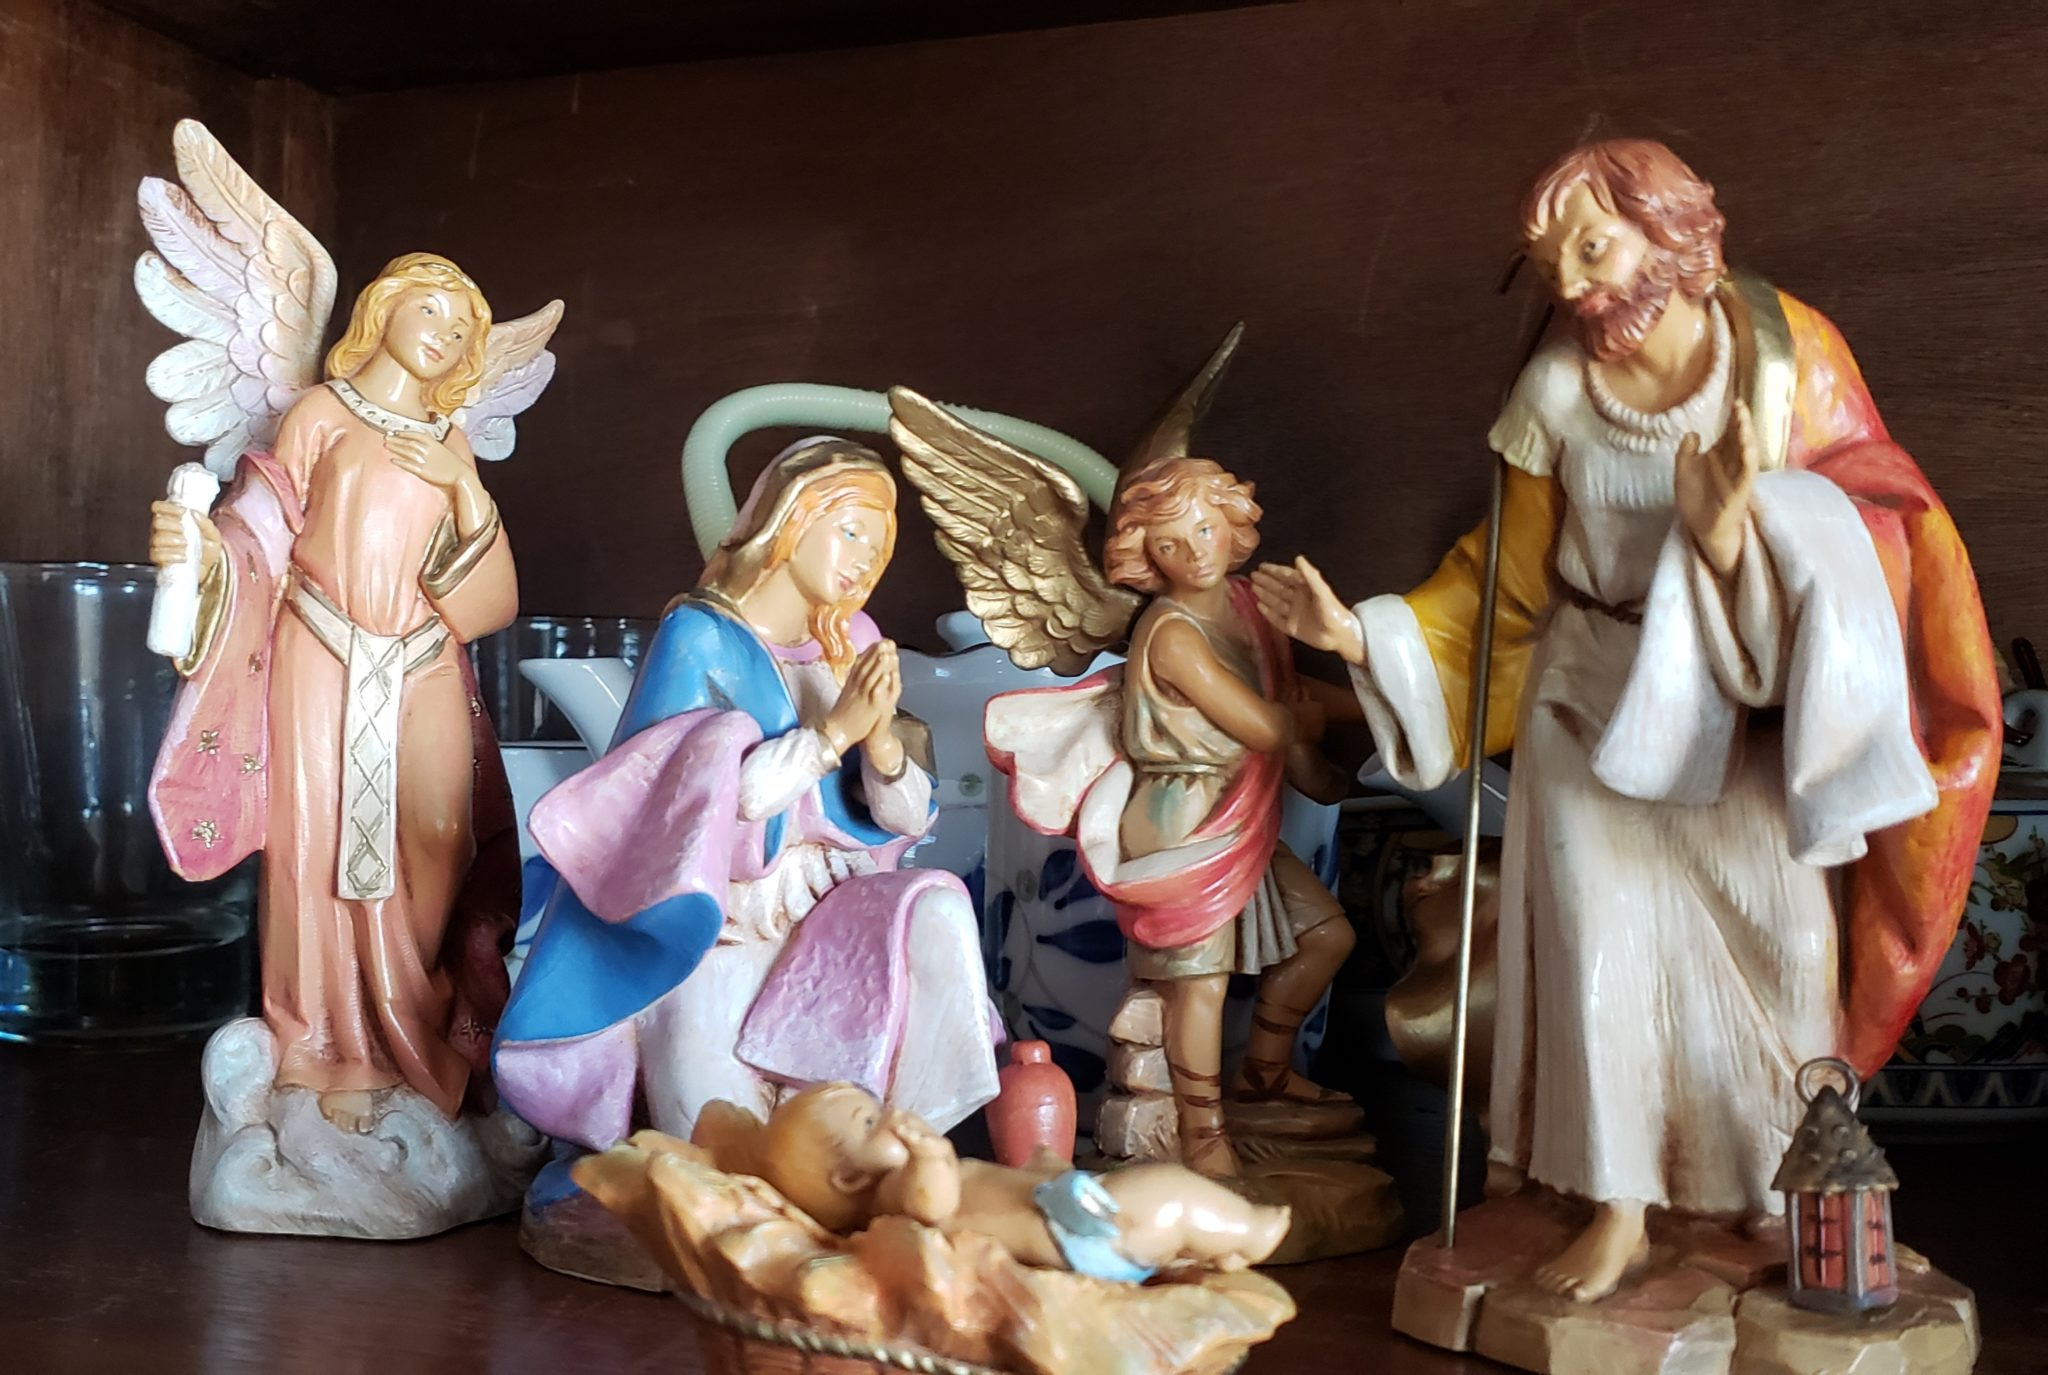 A porcelain nativity shows Joseph, Mary, baby Jesus, and angels.